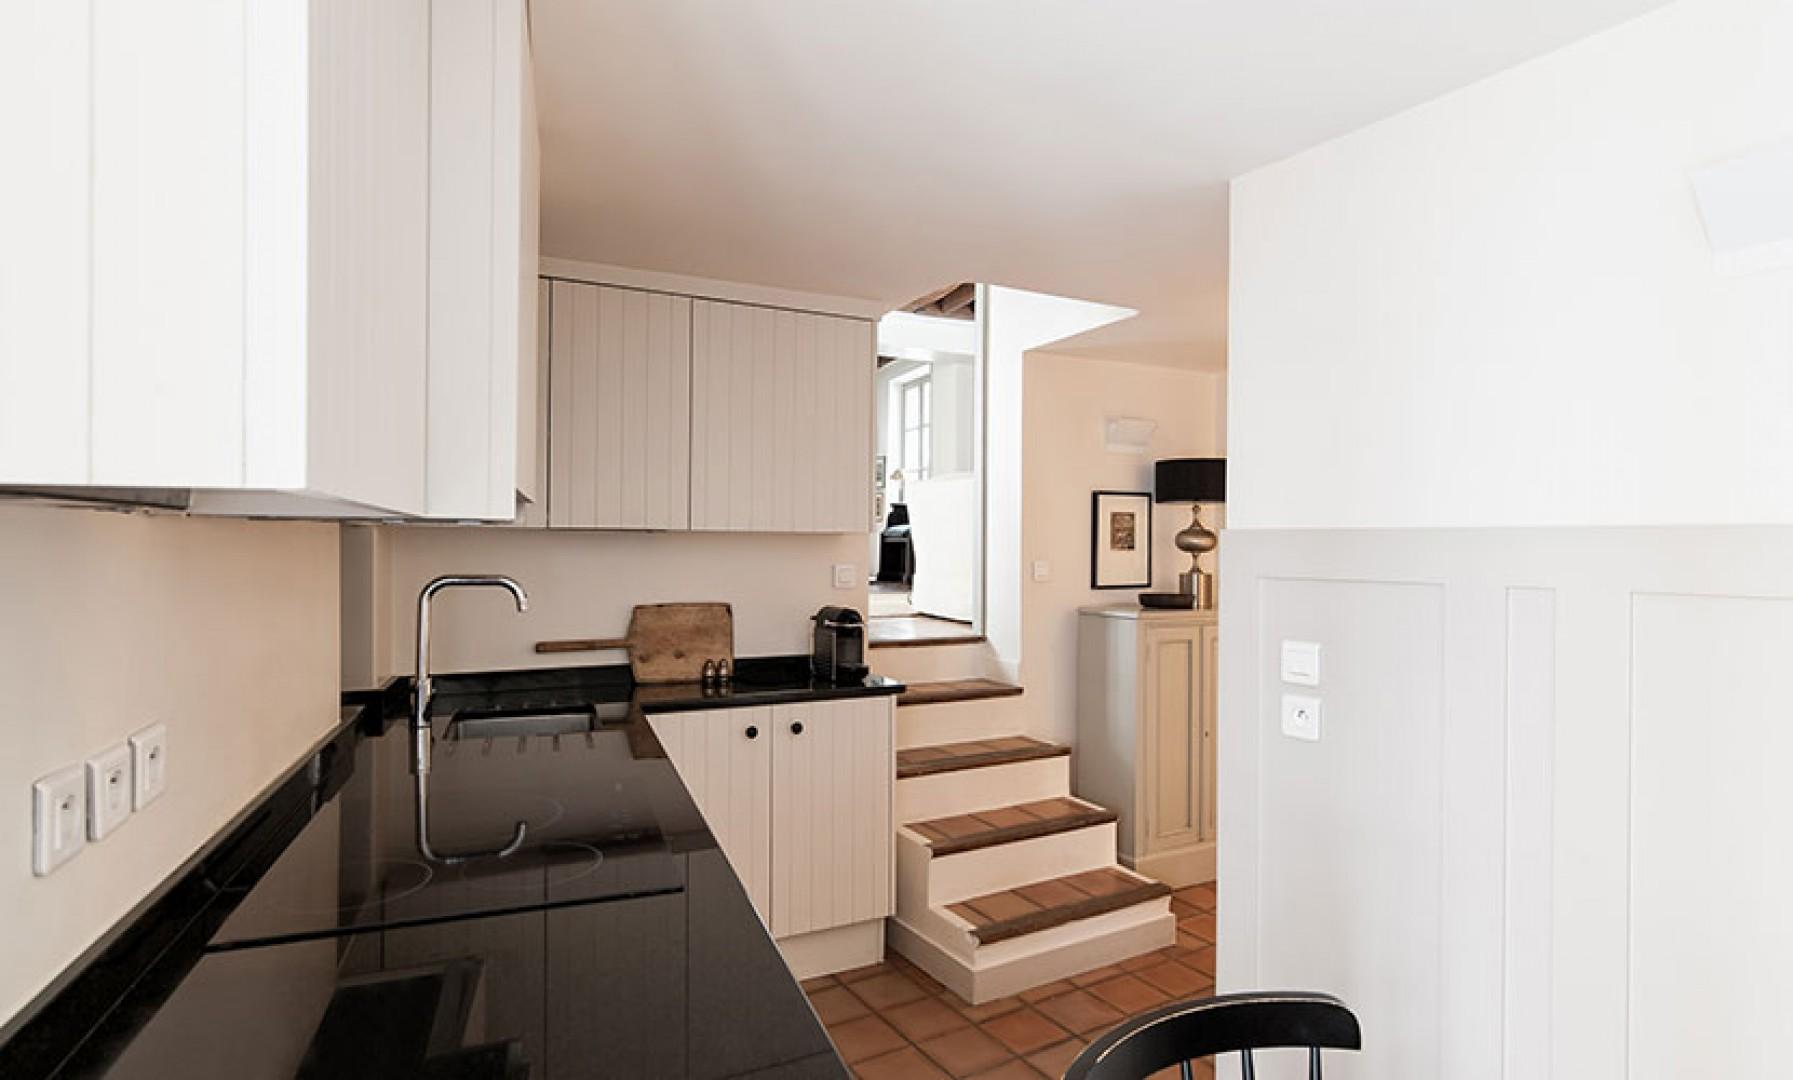 Cook at home in this beautifully designed, modern kitchen.